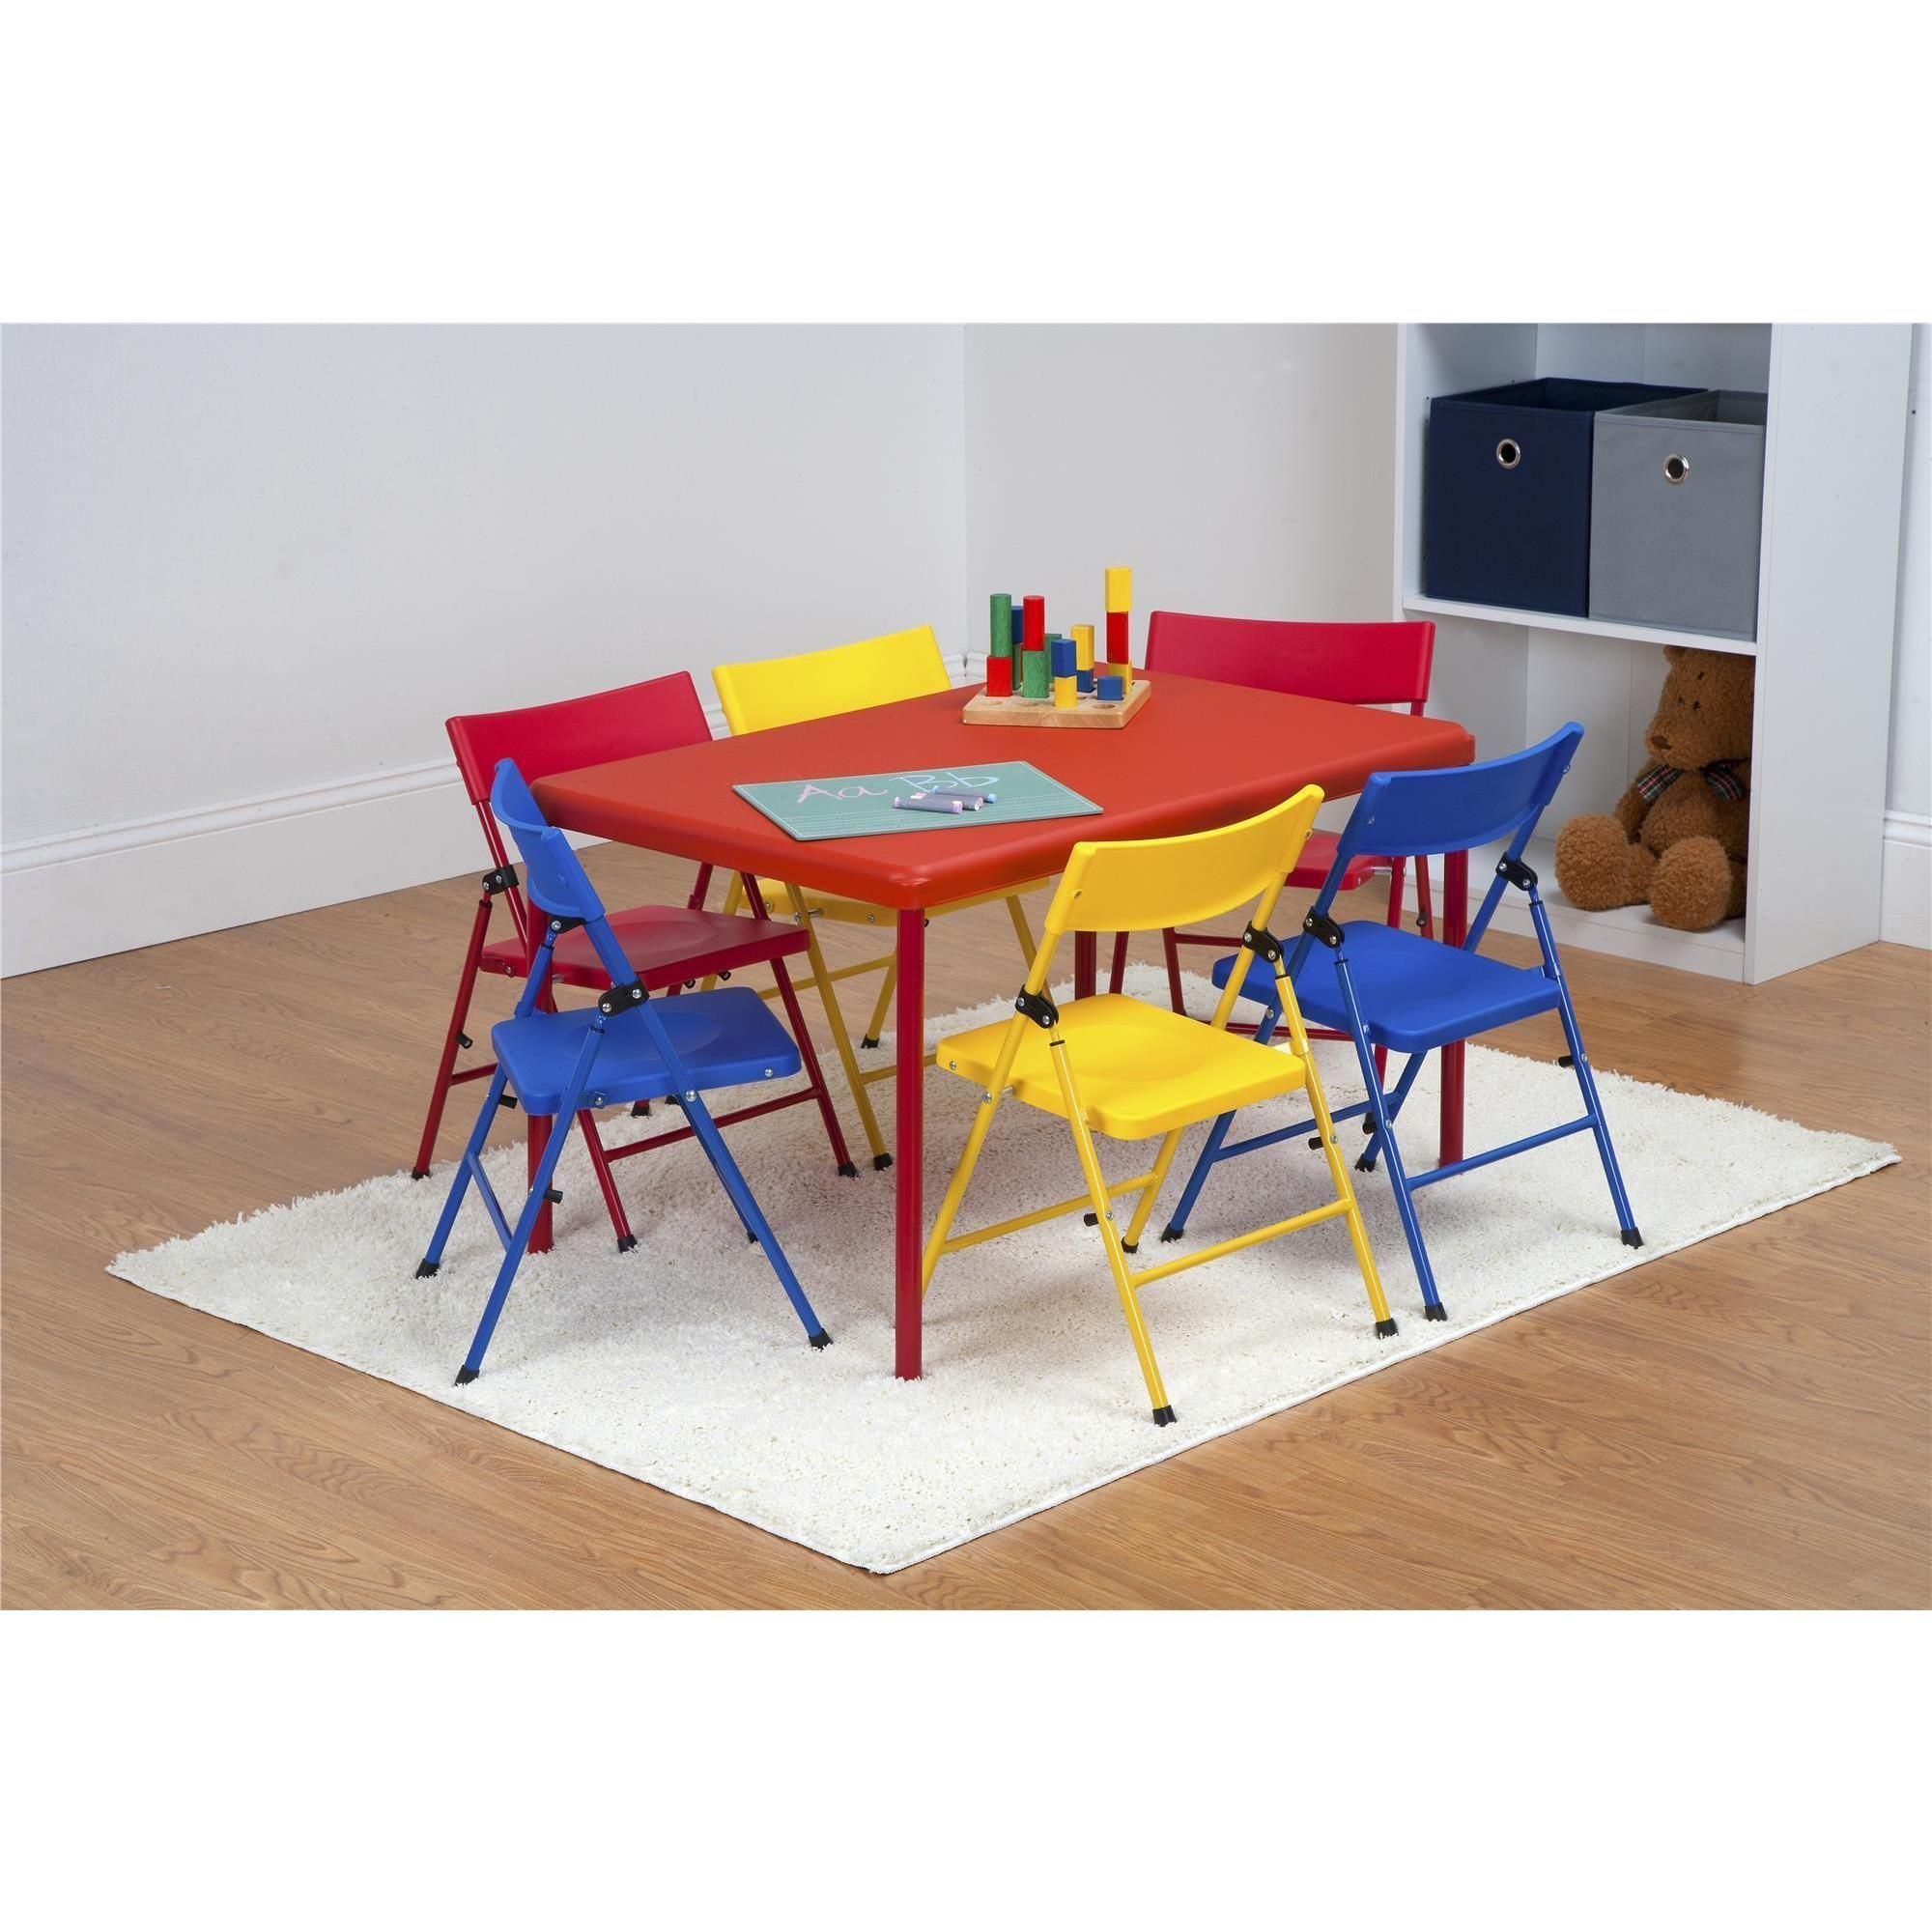 Children's Trestle Table Cosco Safety First 7 Piece Children S Juvenile Set With Pinch Free